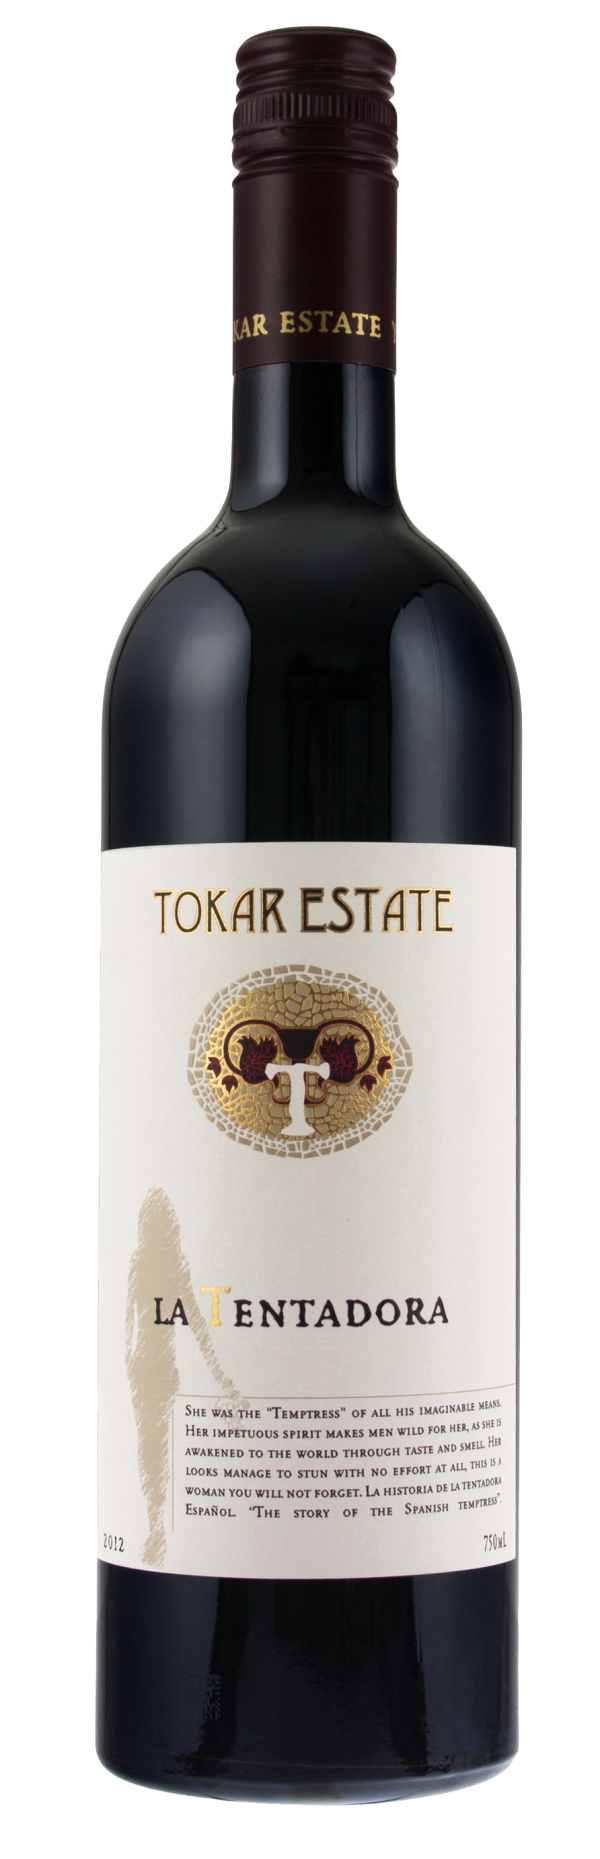 Tokar-Estate-La-Tentadora-2012